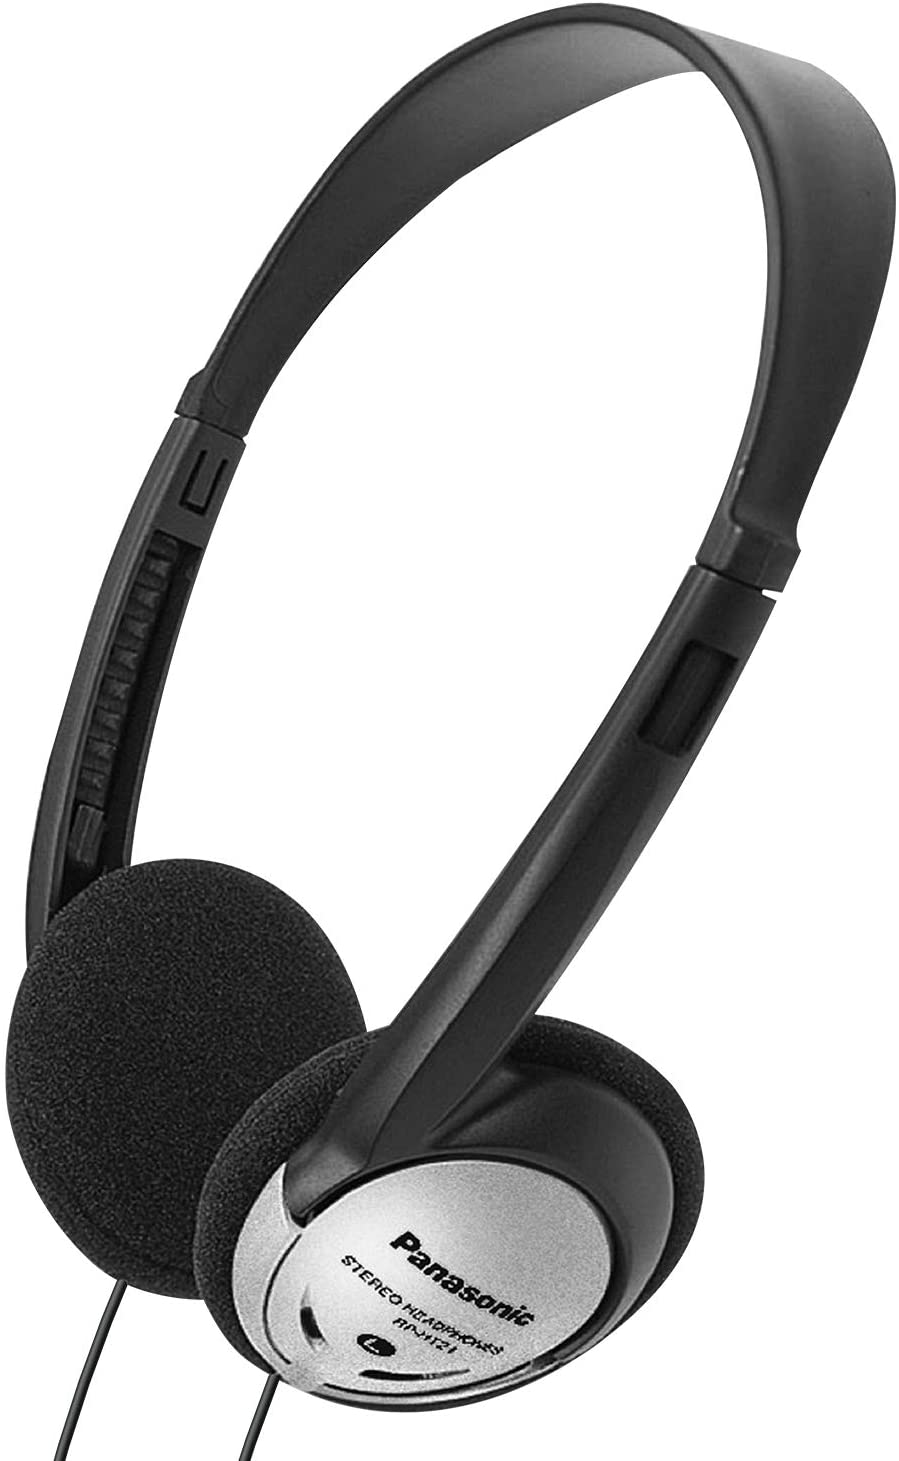 Panasonic Headphones On-Ear Lightweight with XBS RP-HT21 (Black & Silver)